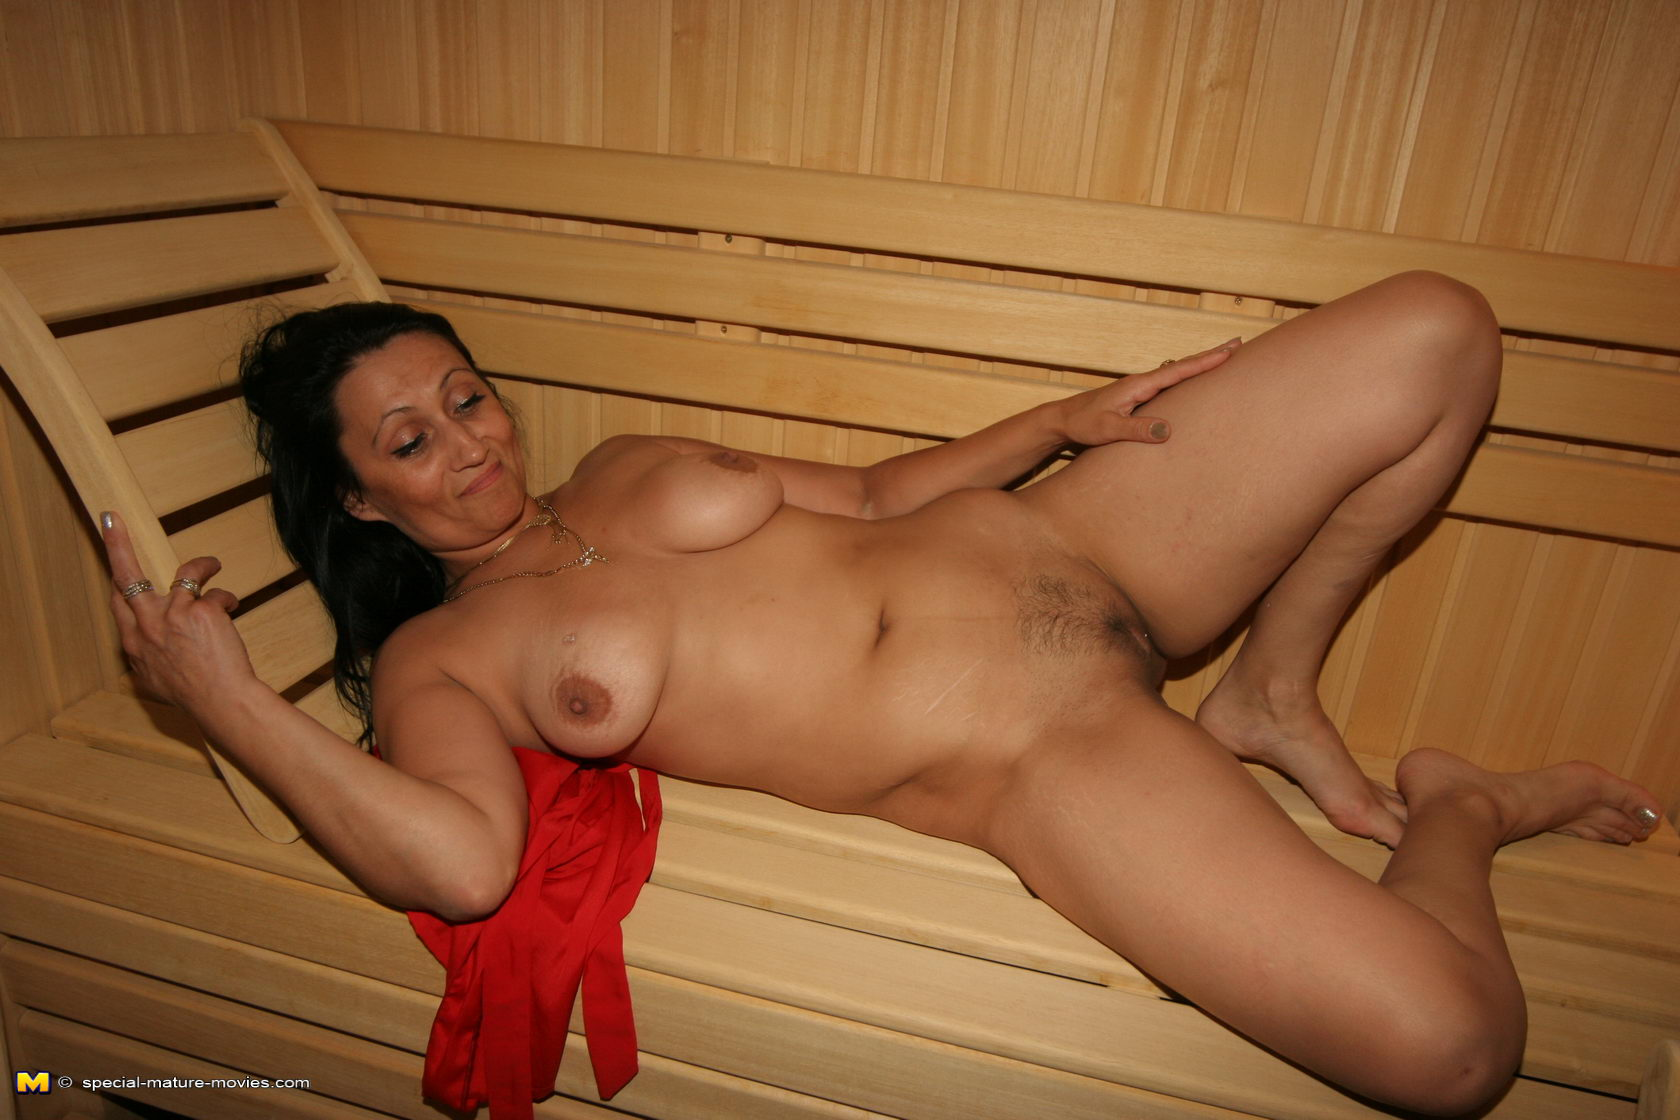 free mobile nude sexy model girl